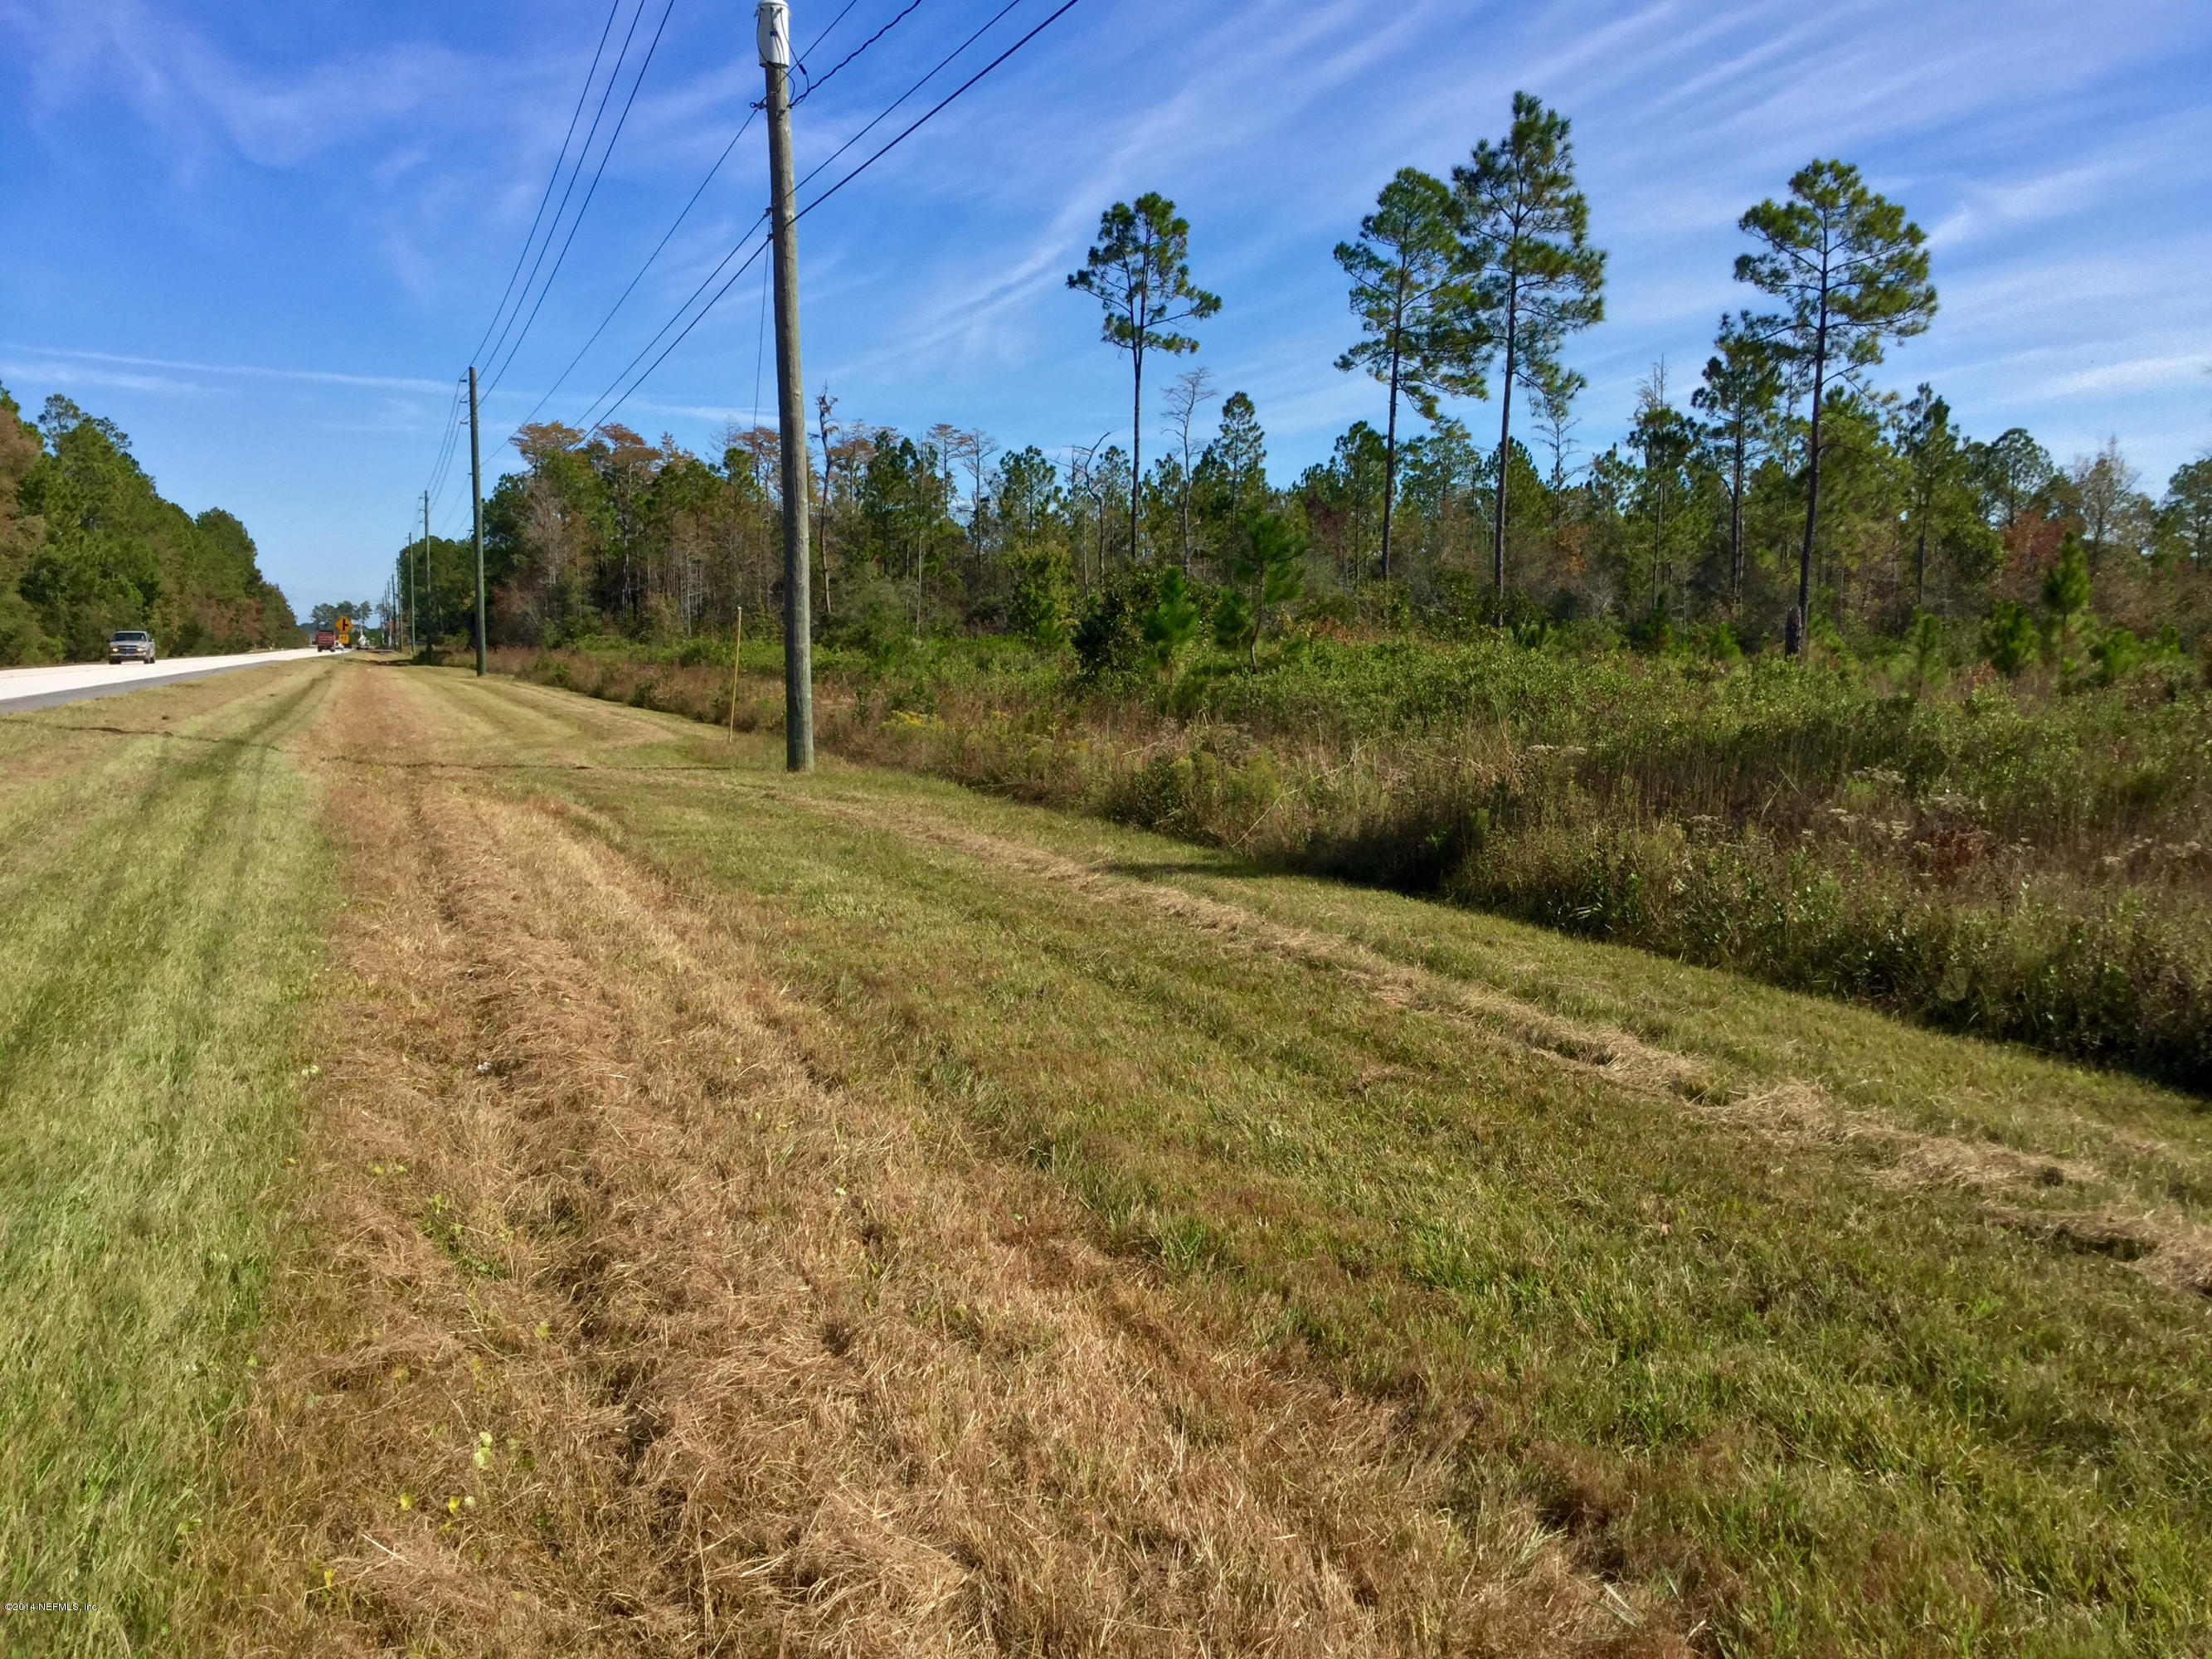 0 NORMANDY, JACKSONVILLE, FLORIDA 32234, ,Vacant land,For sale,NORMANDY,805063